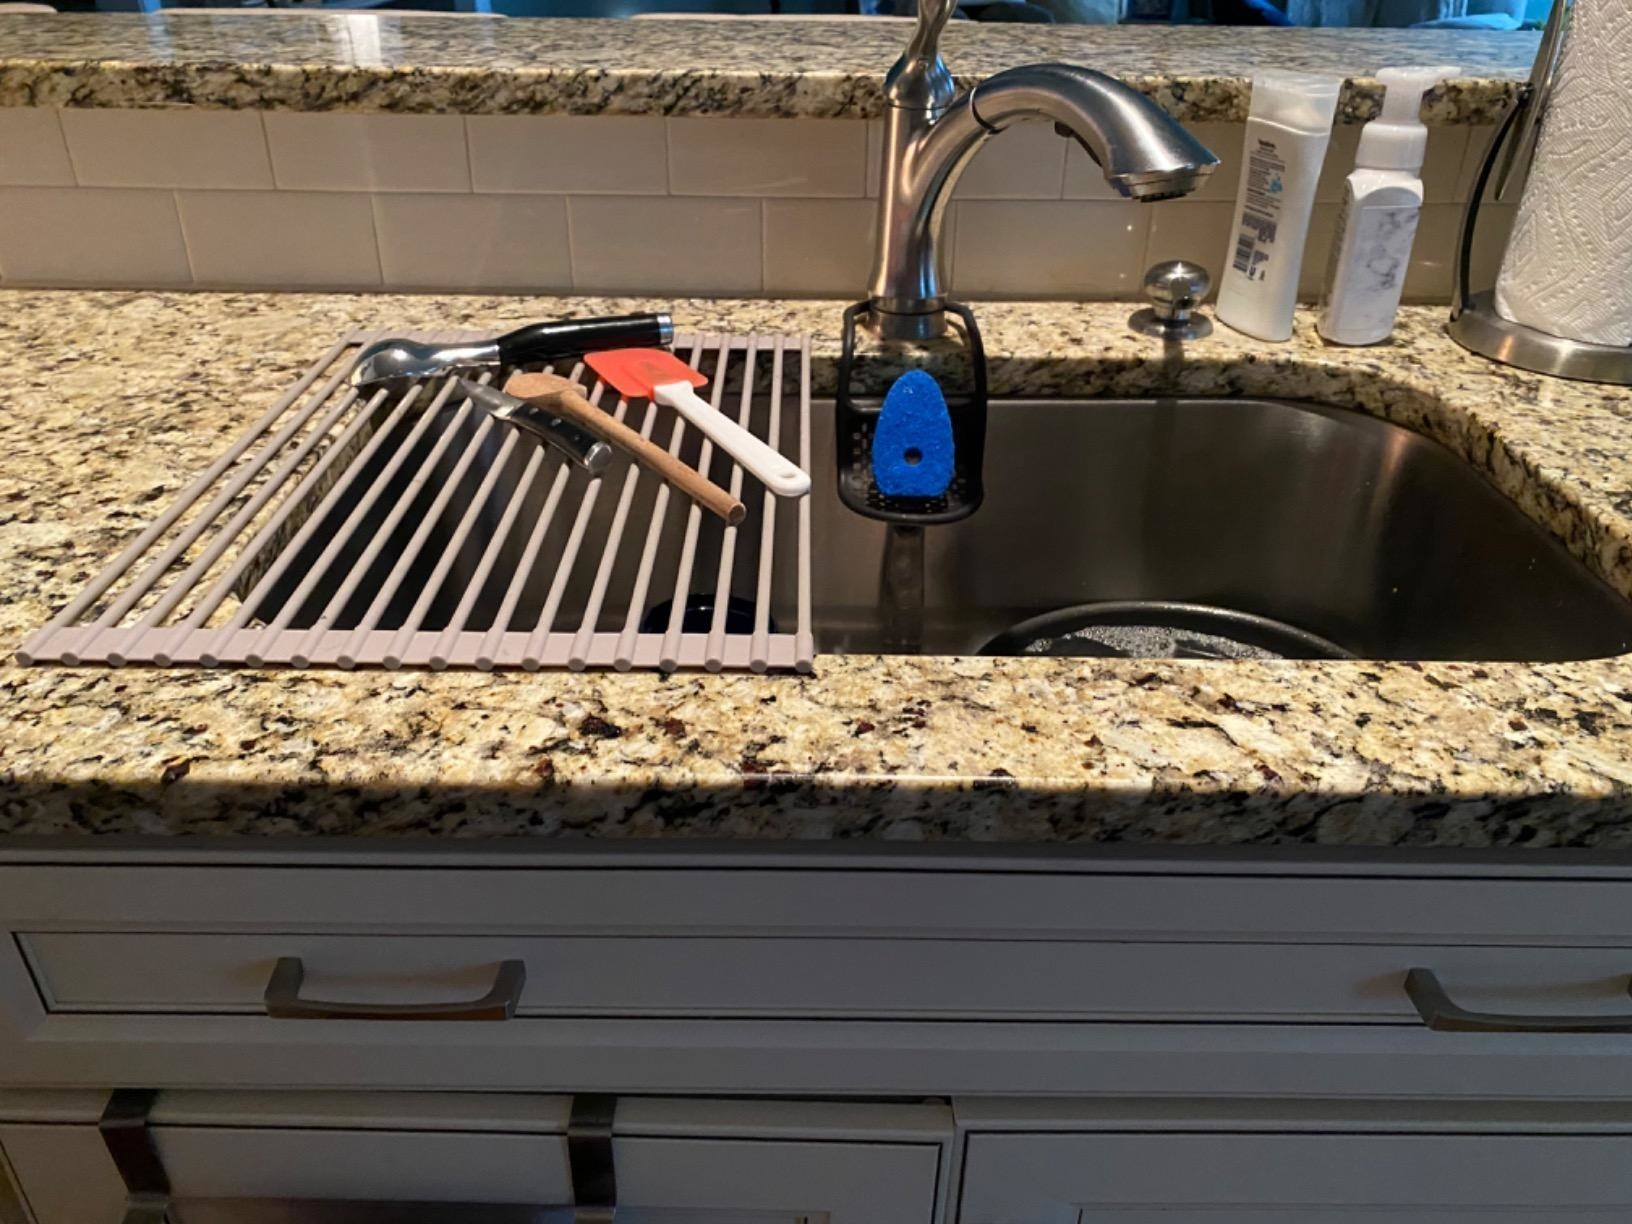 the rack with utensils on one side of a large sink